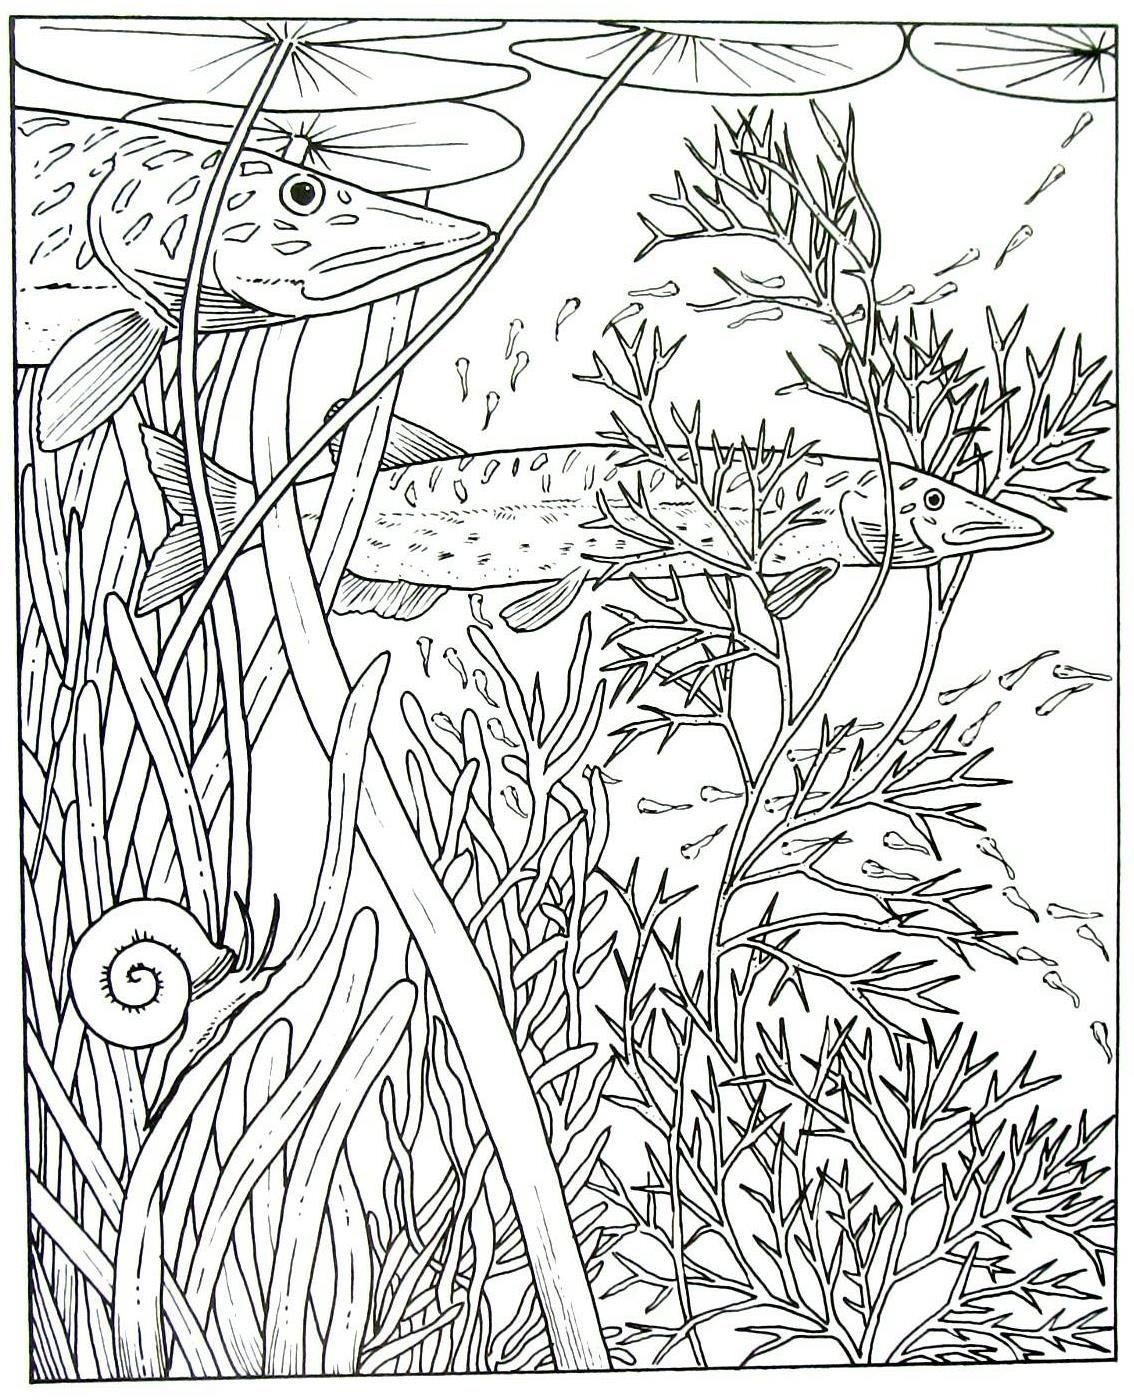 Northern Pike Animal Coloring Book Page Printable